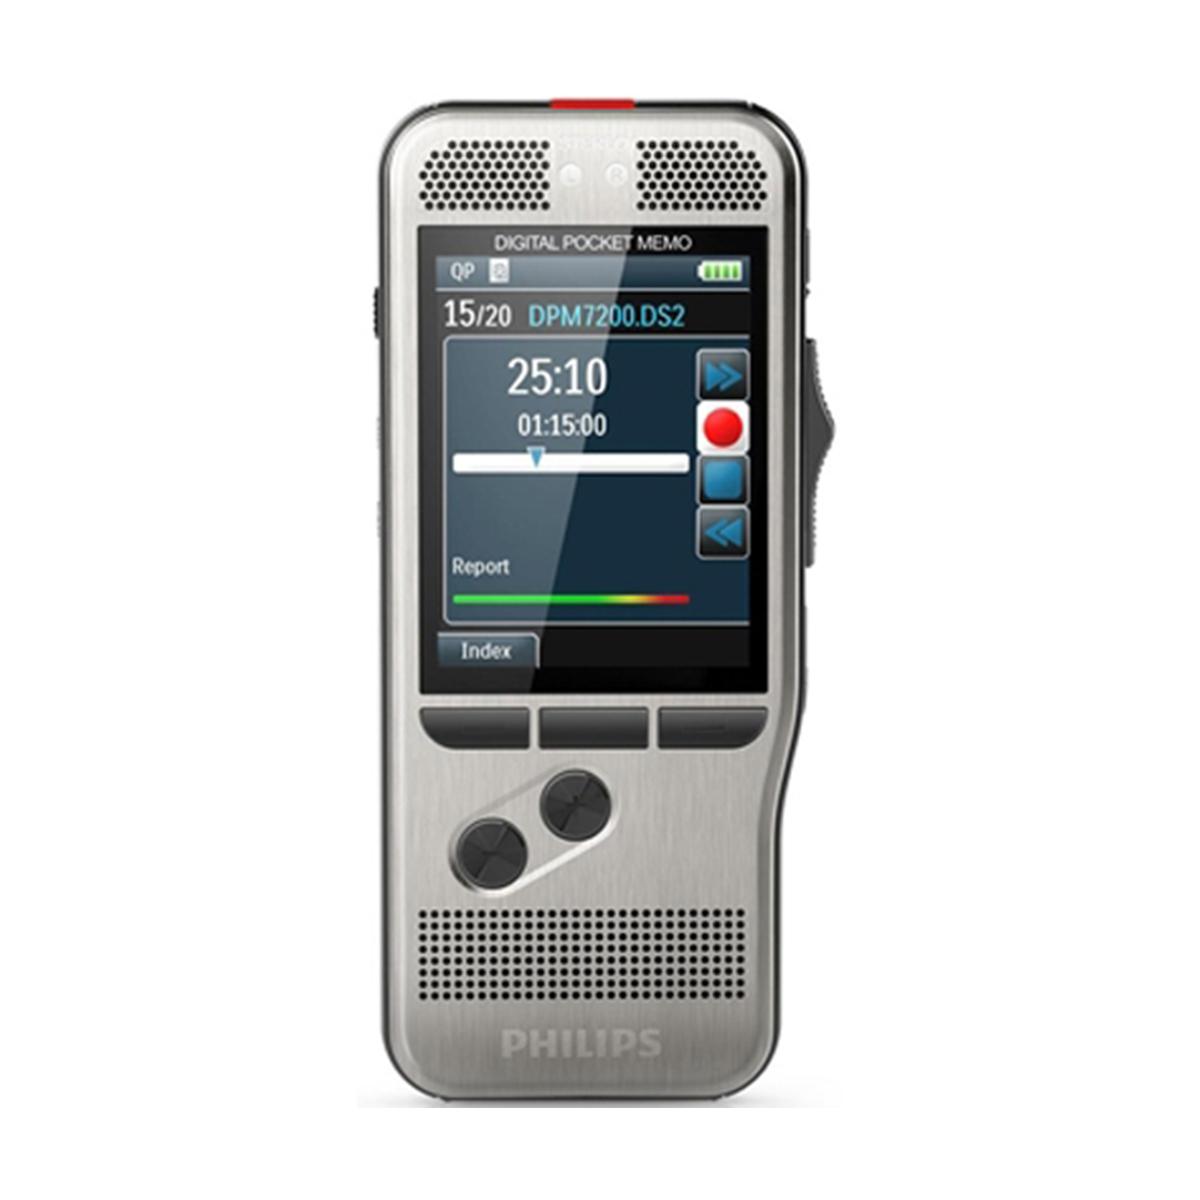 Philips DPM7200 Pocket Memo